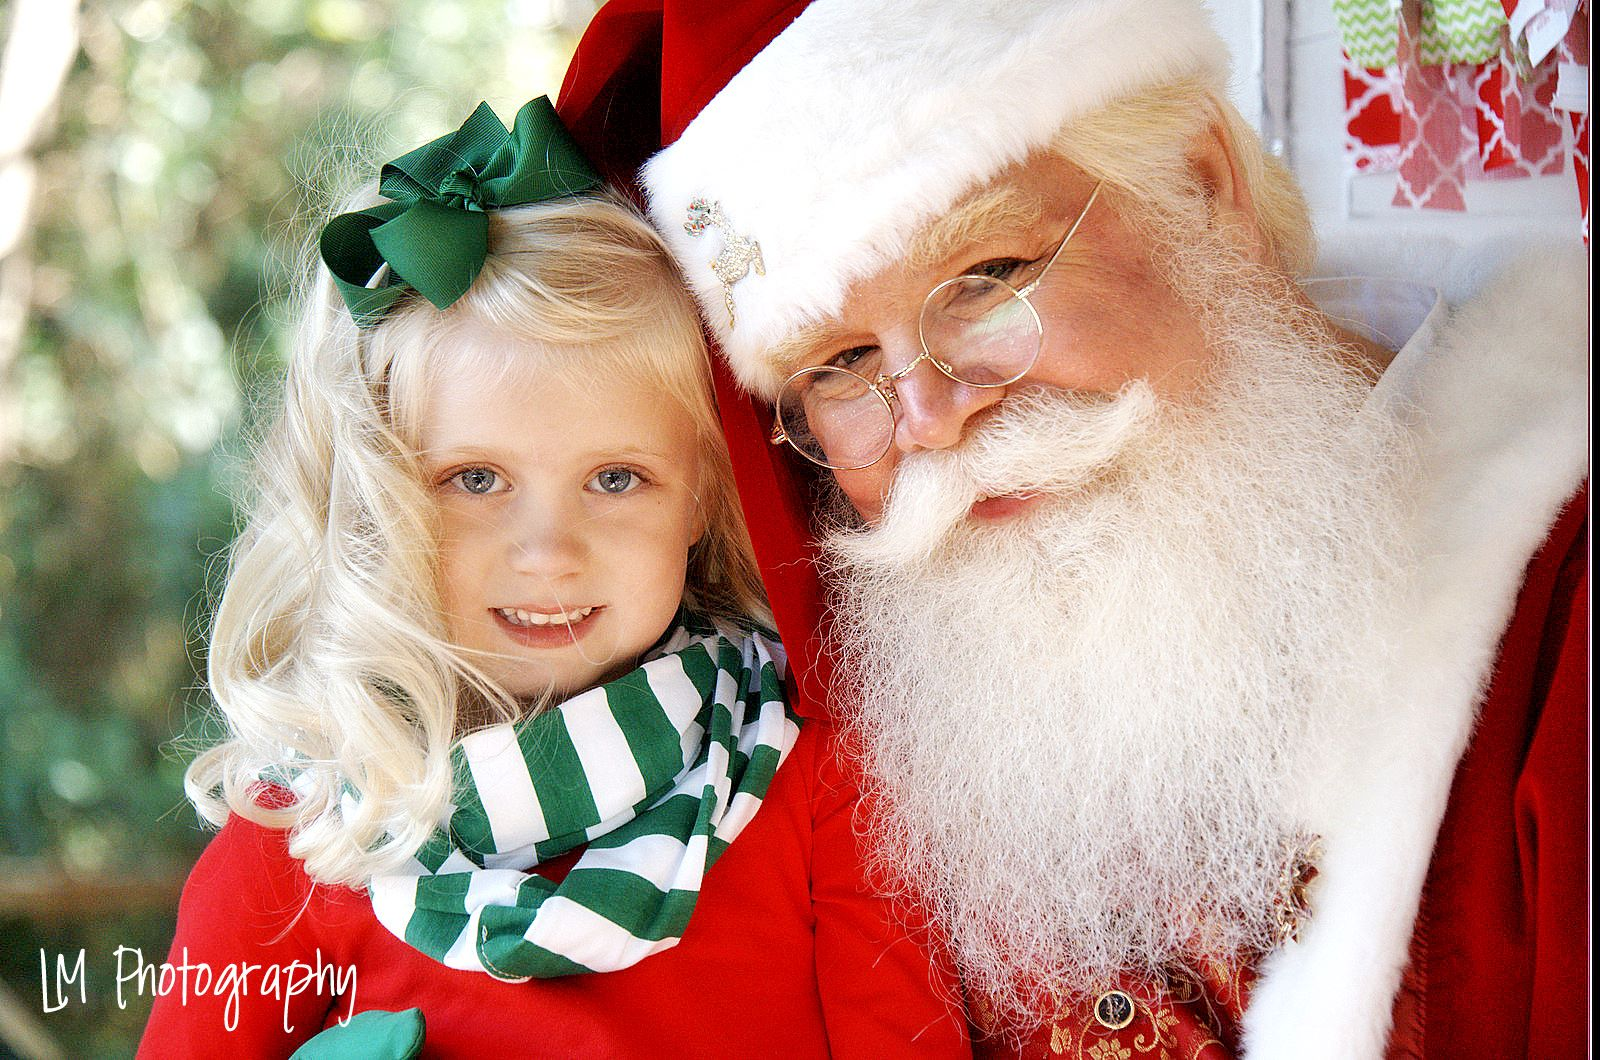 To book Santa Chuck for an event, party or visit, call Rent Santa DFW at 214-886-4243!